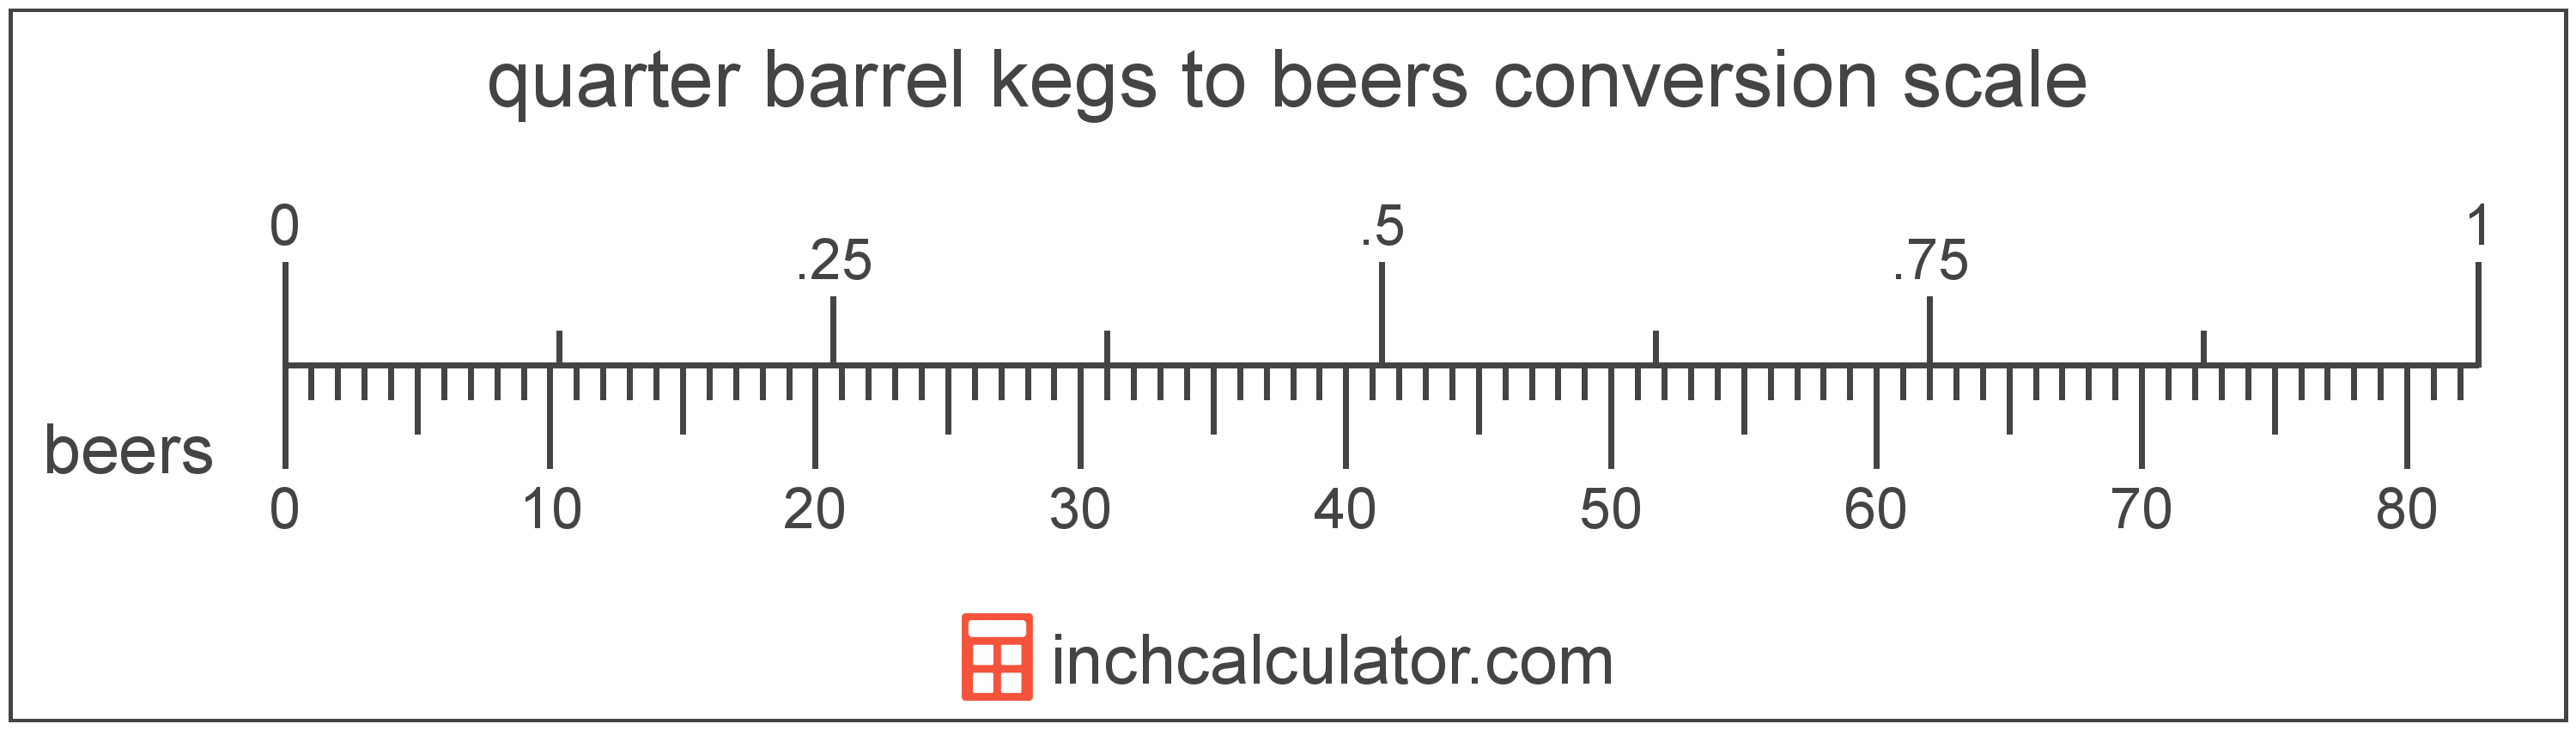 conversion scale showing beers and equivalent quarter barrel kegs beer volume values